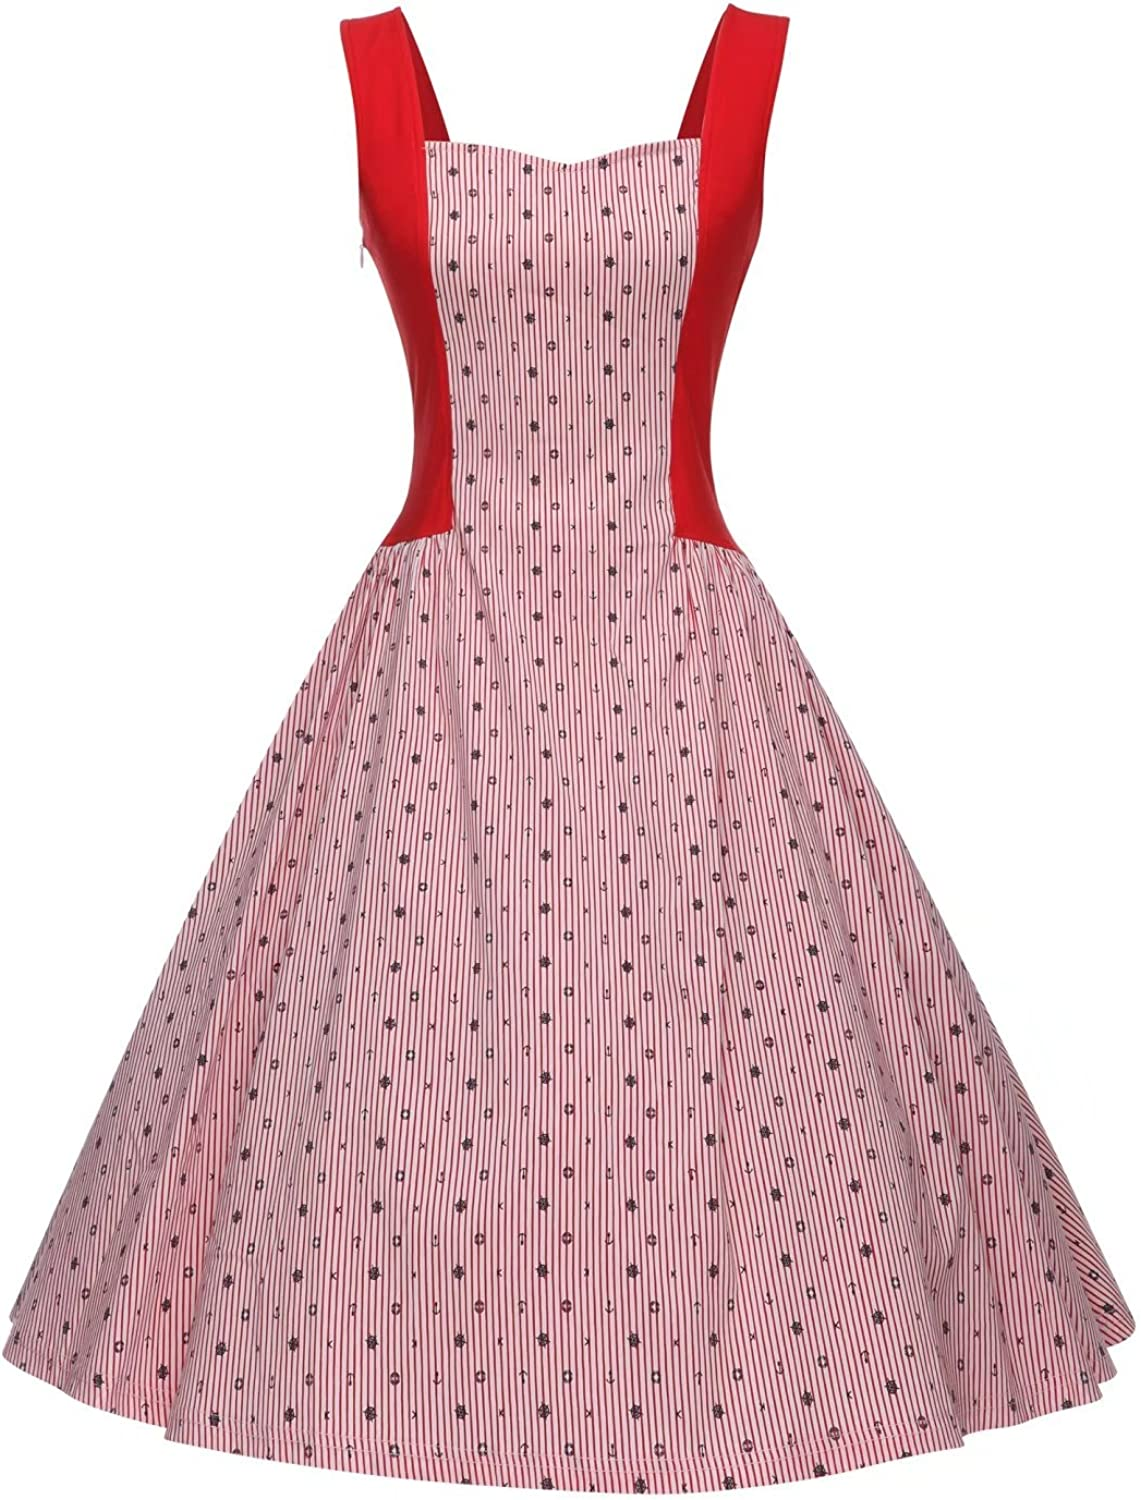 GownTown Women's Sleeveless Vintage Cocktail Party Swing Dress